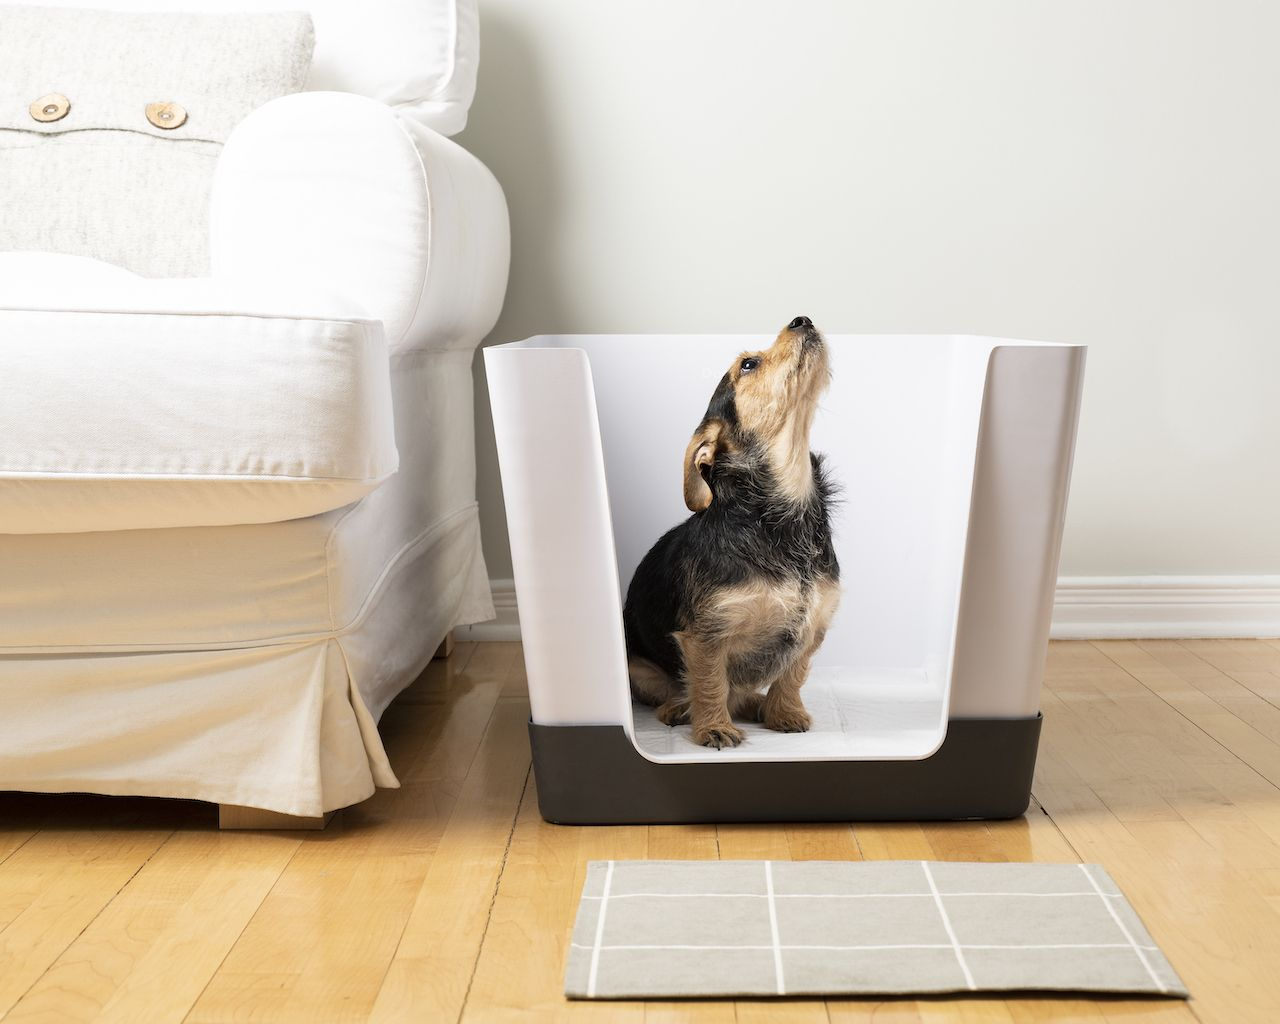 Doggy Bathroom An Indoor Potty Solution For Small Dogs Indoor